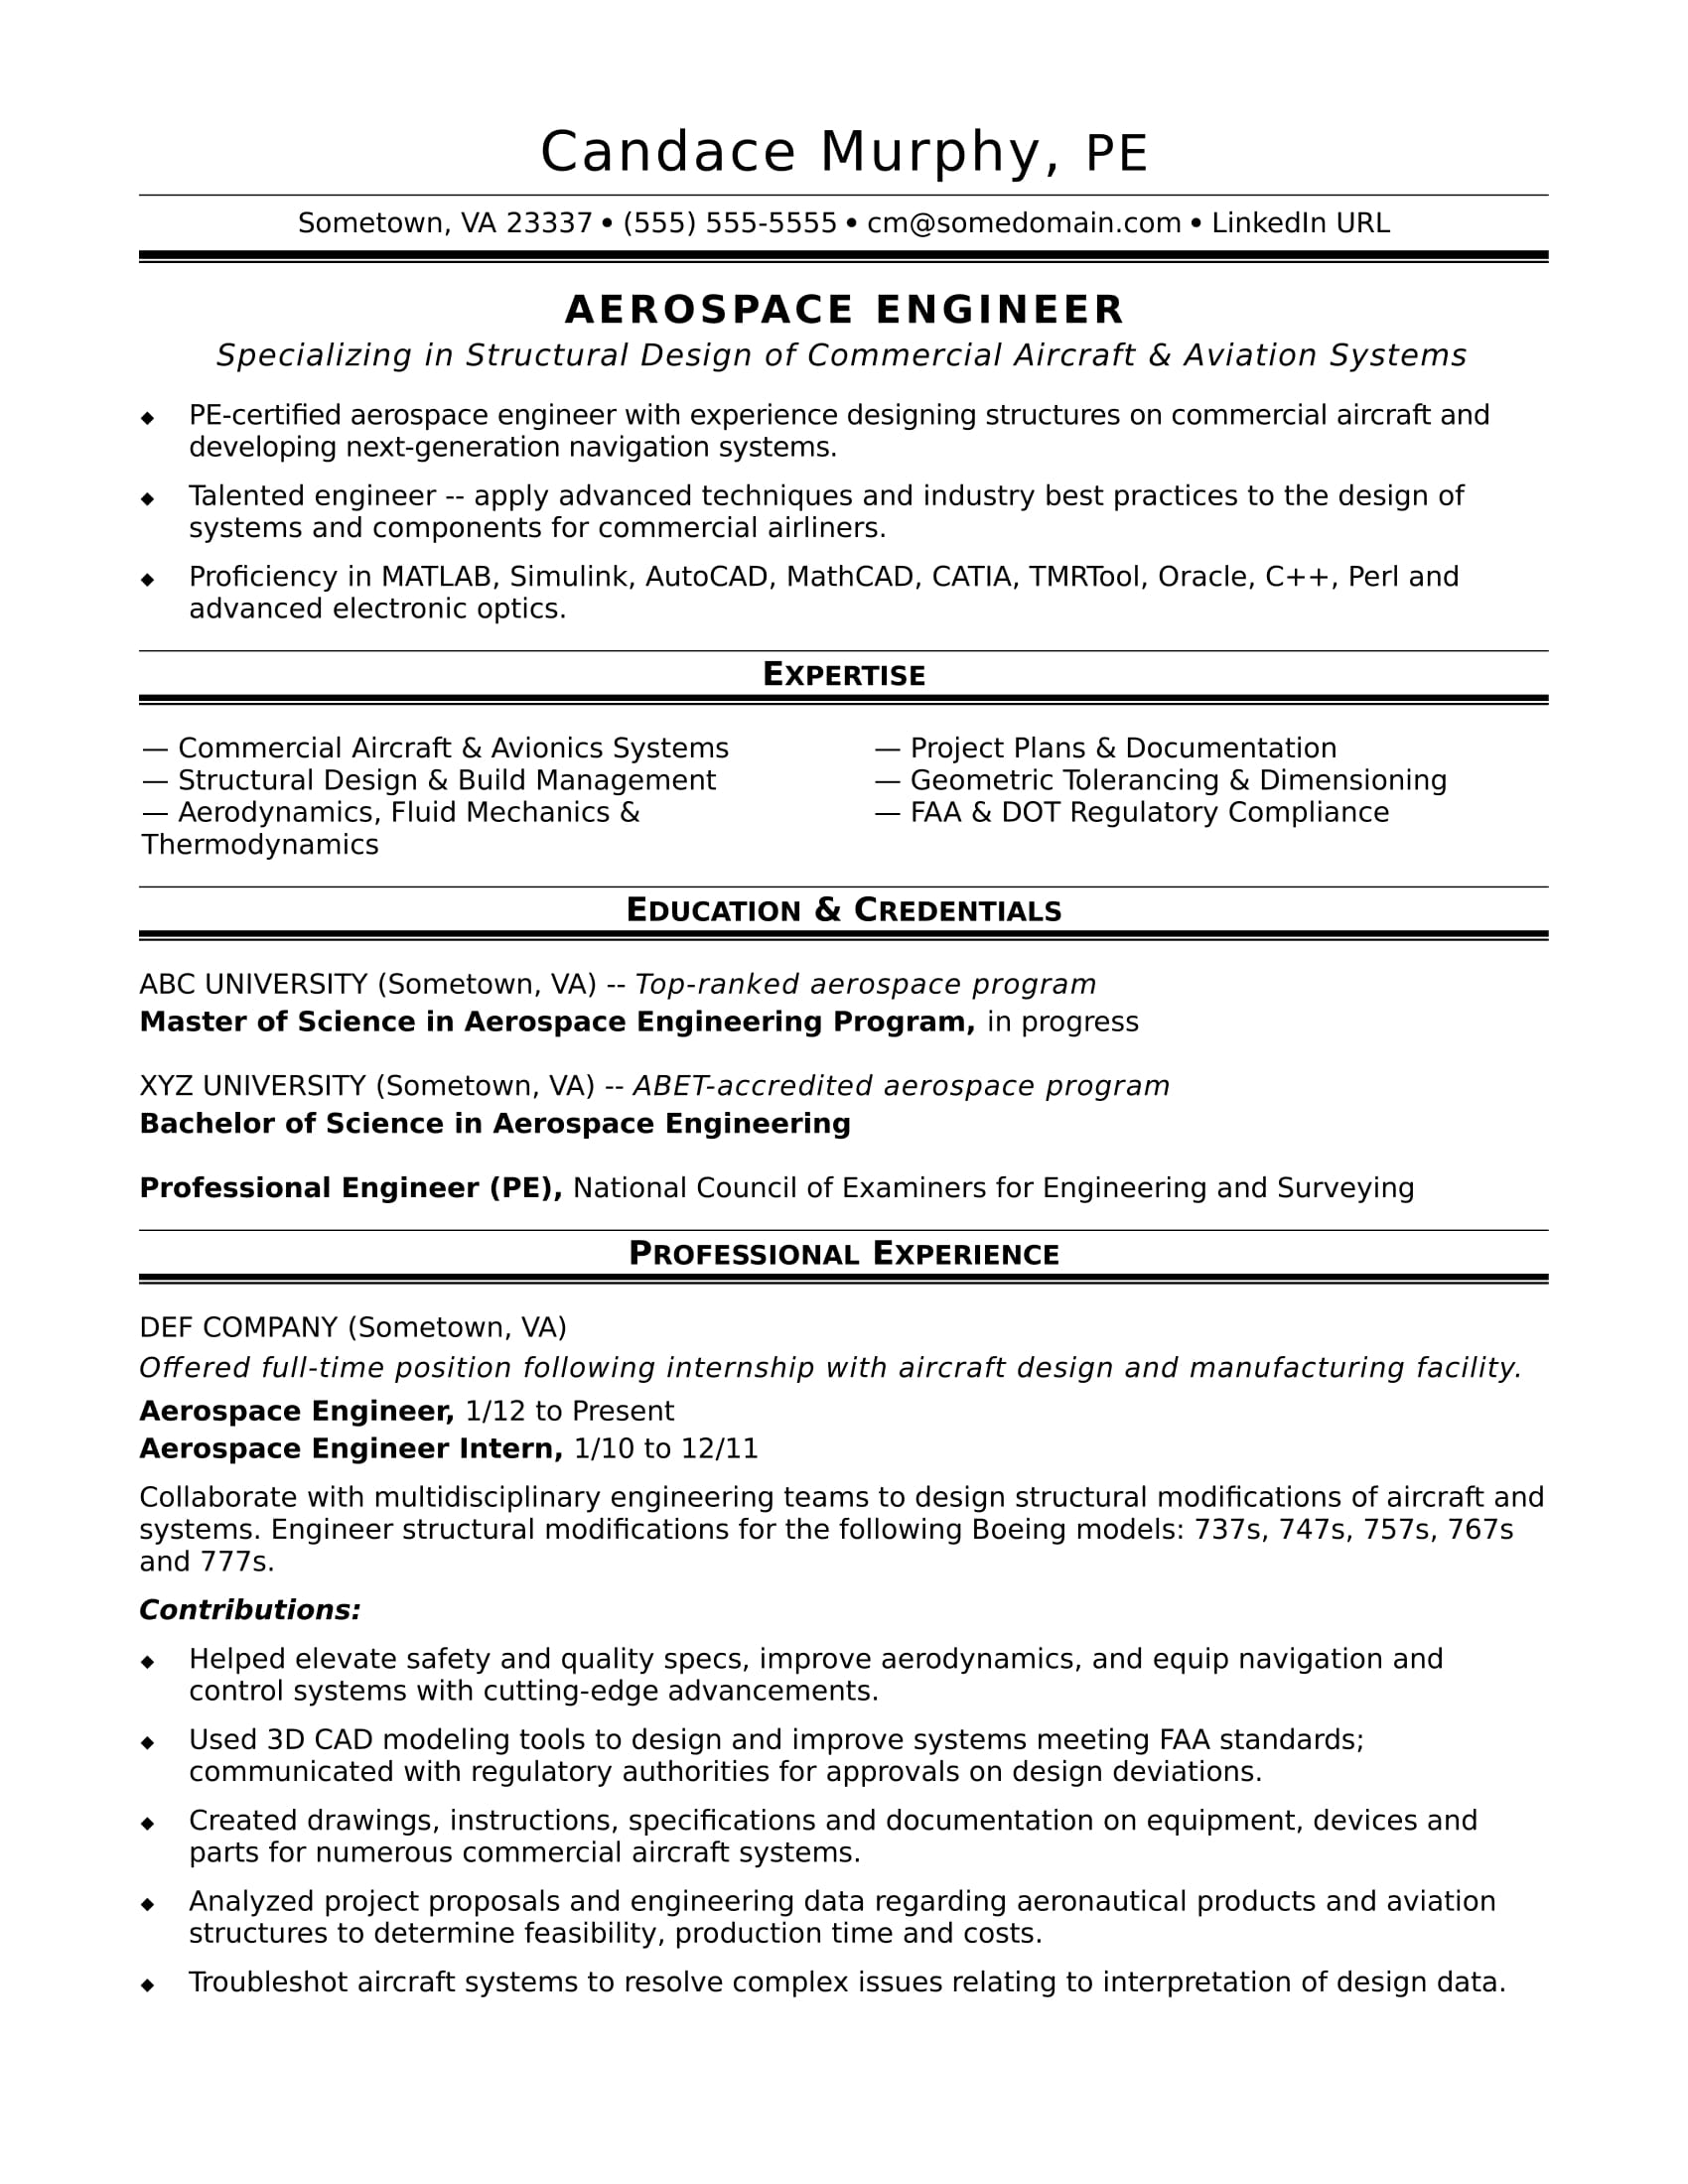 Sample resume for a midlevel aerospace engineer